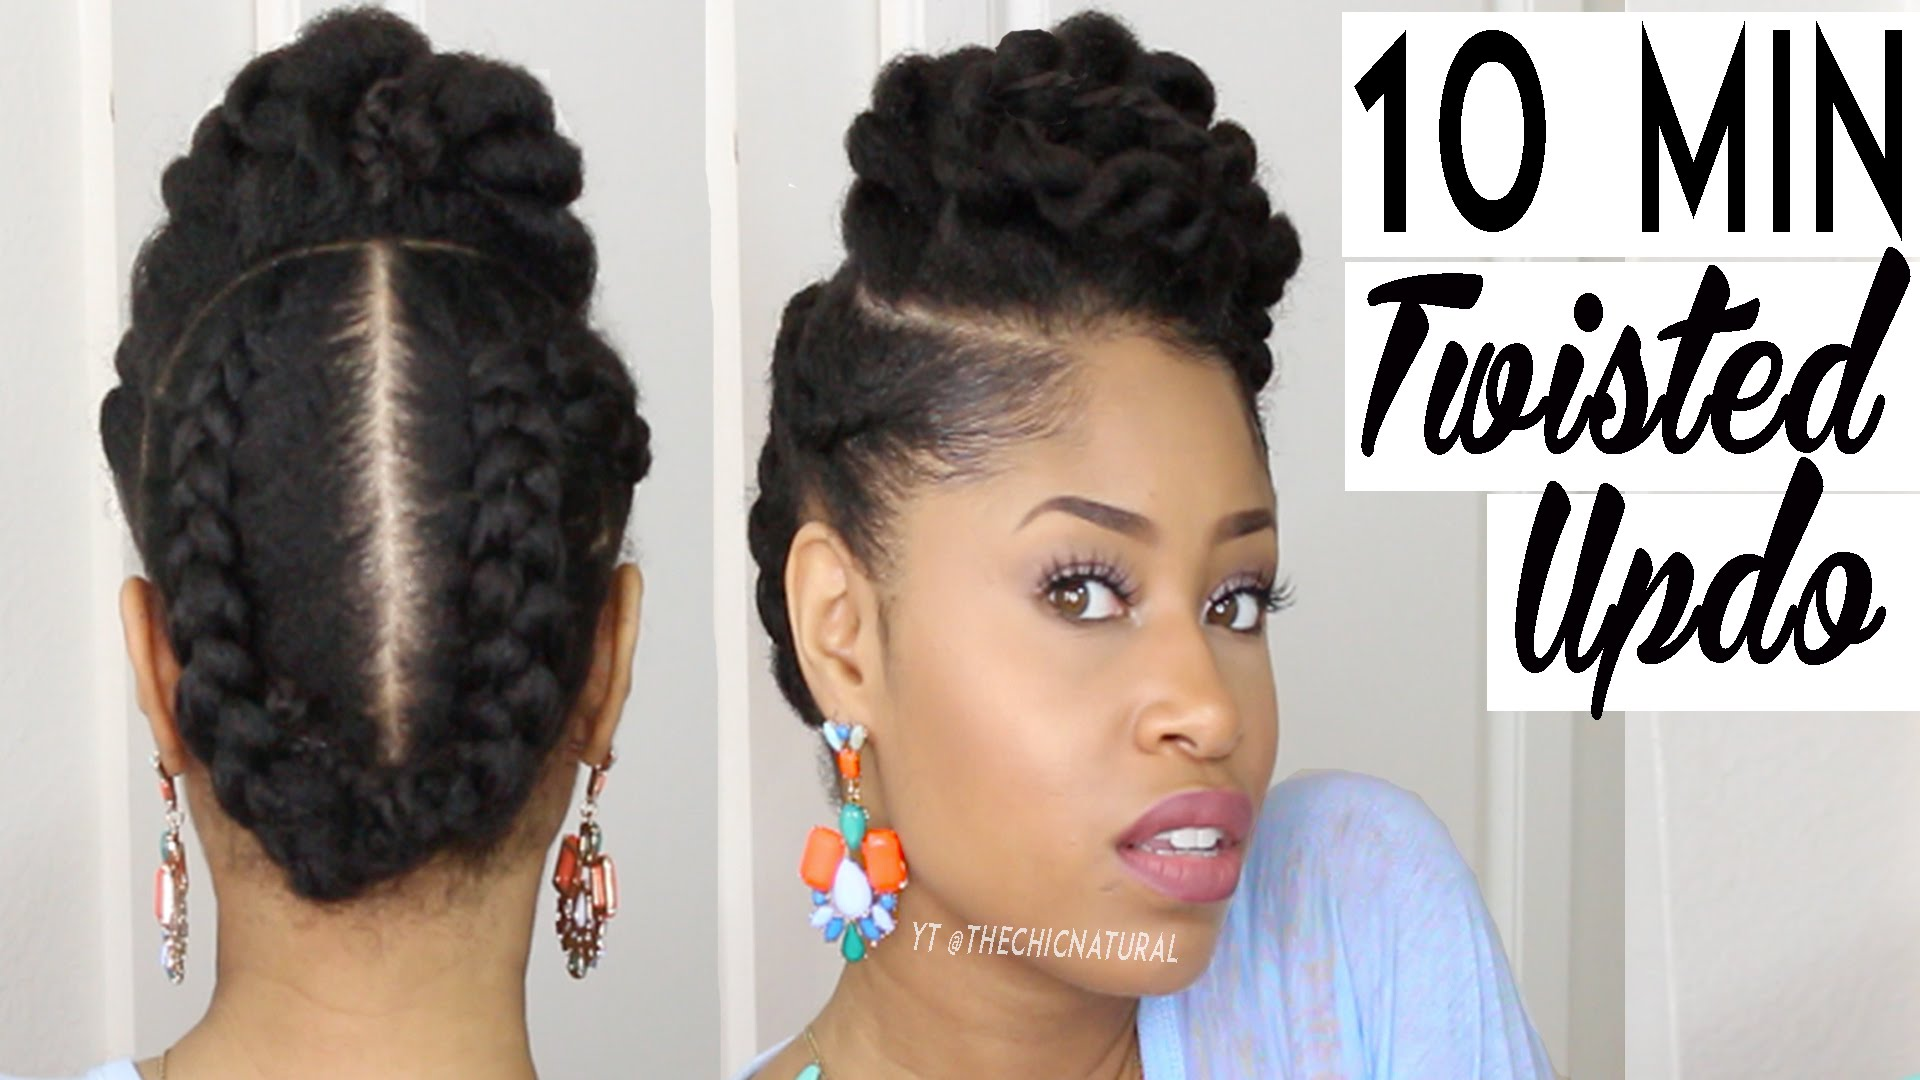 Twisted Natural Hair Protective Updo In 10 Minutes Or Less